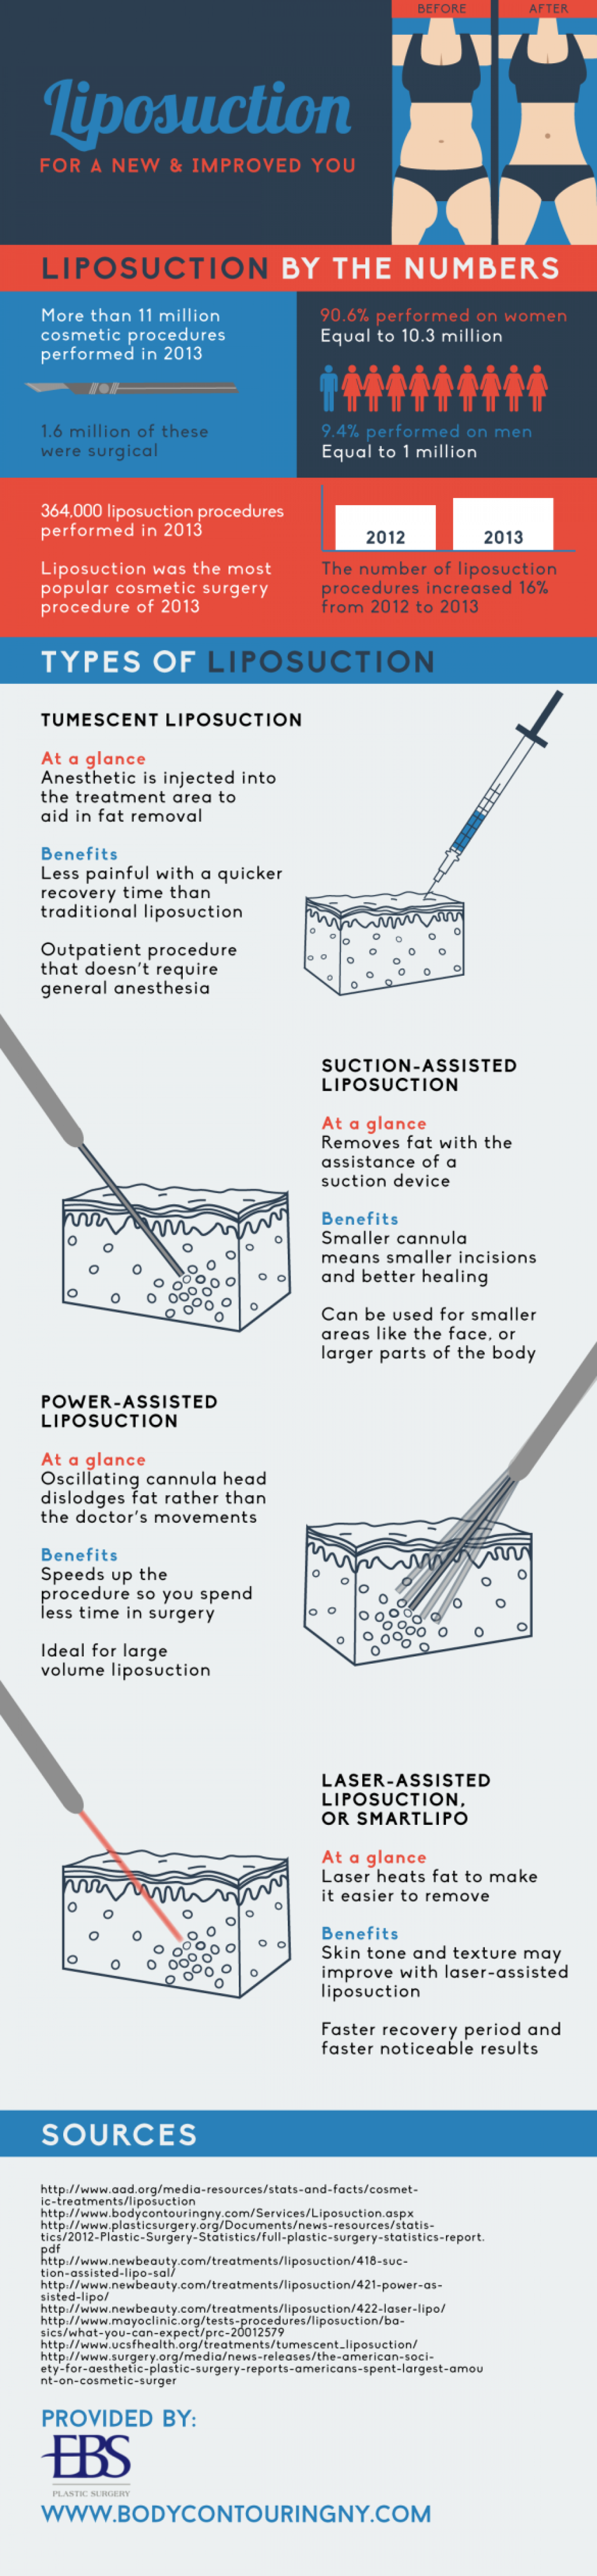 LIPOSUCTION FOR A NEW AND IMPROVED YOU Infographic